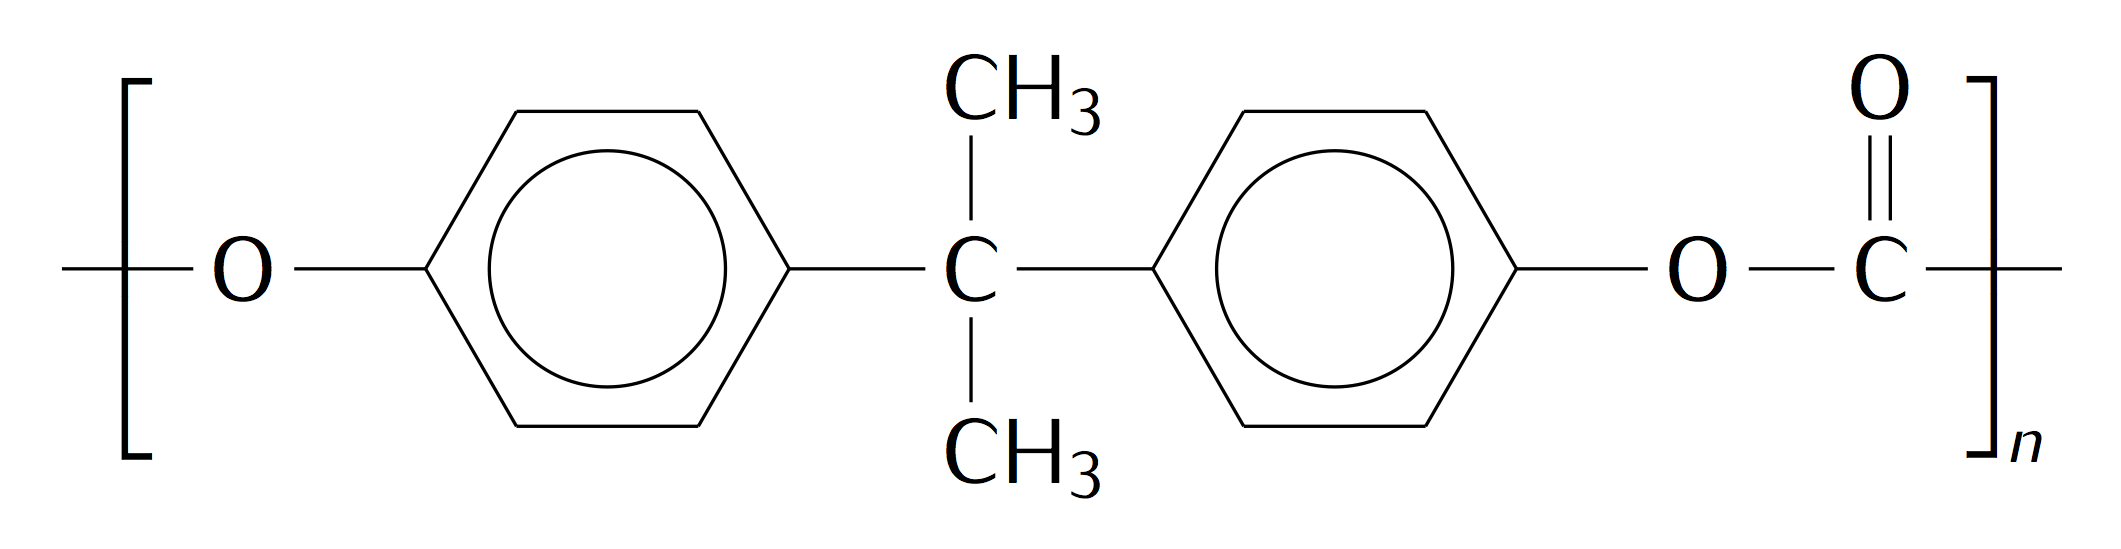 Structure of poly(carbonate)